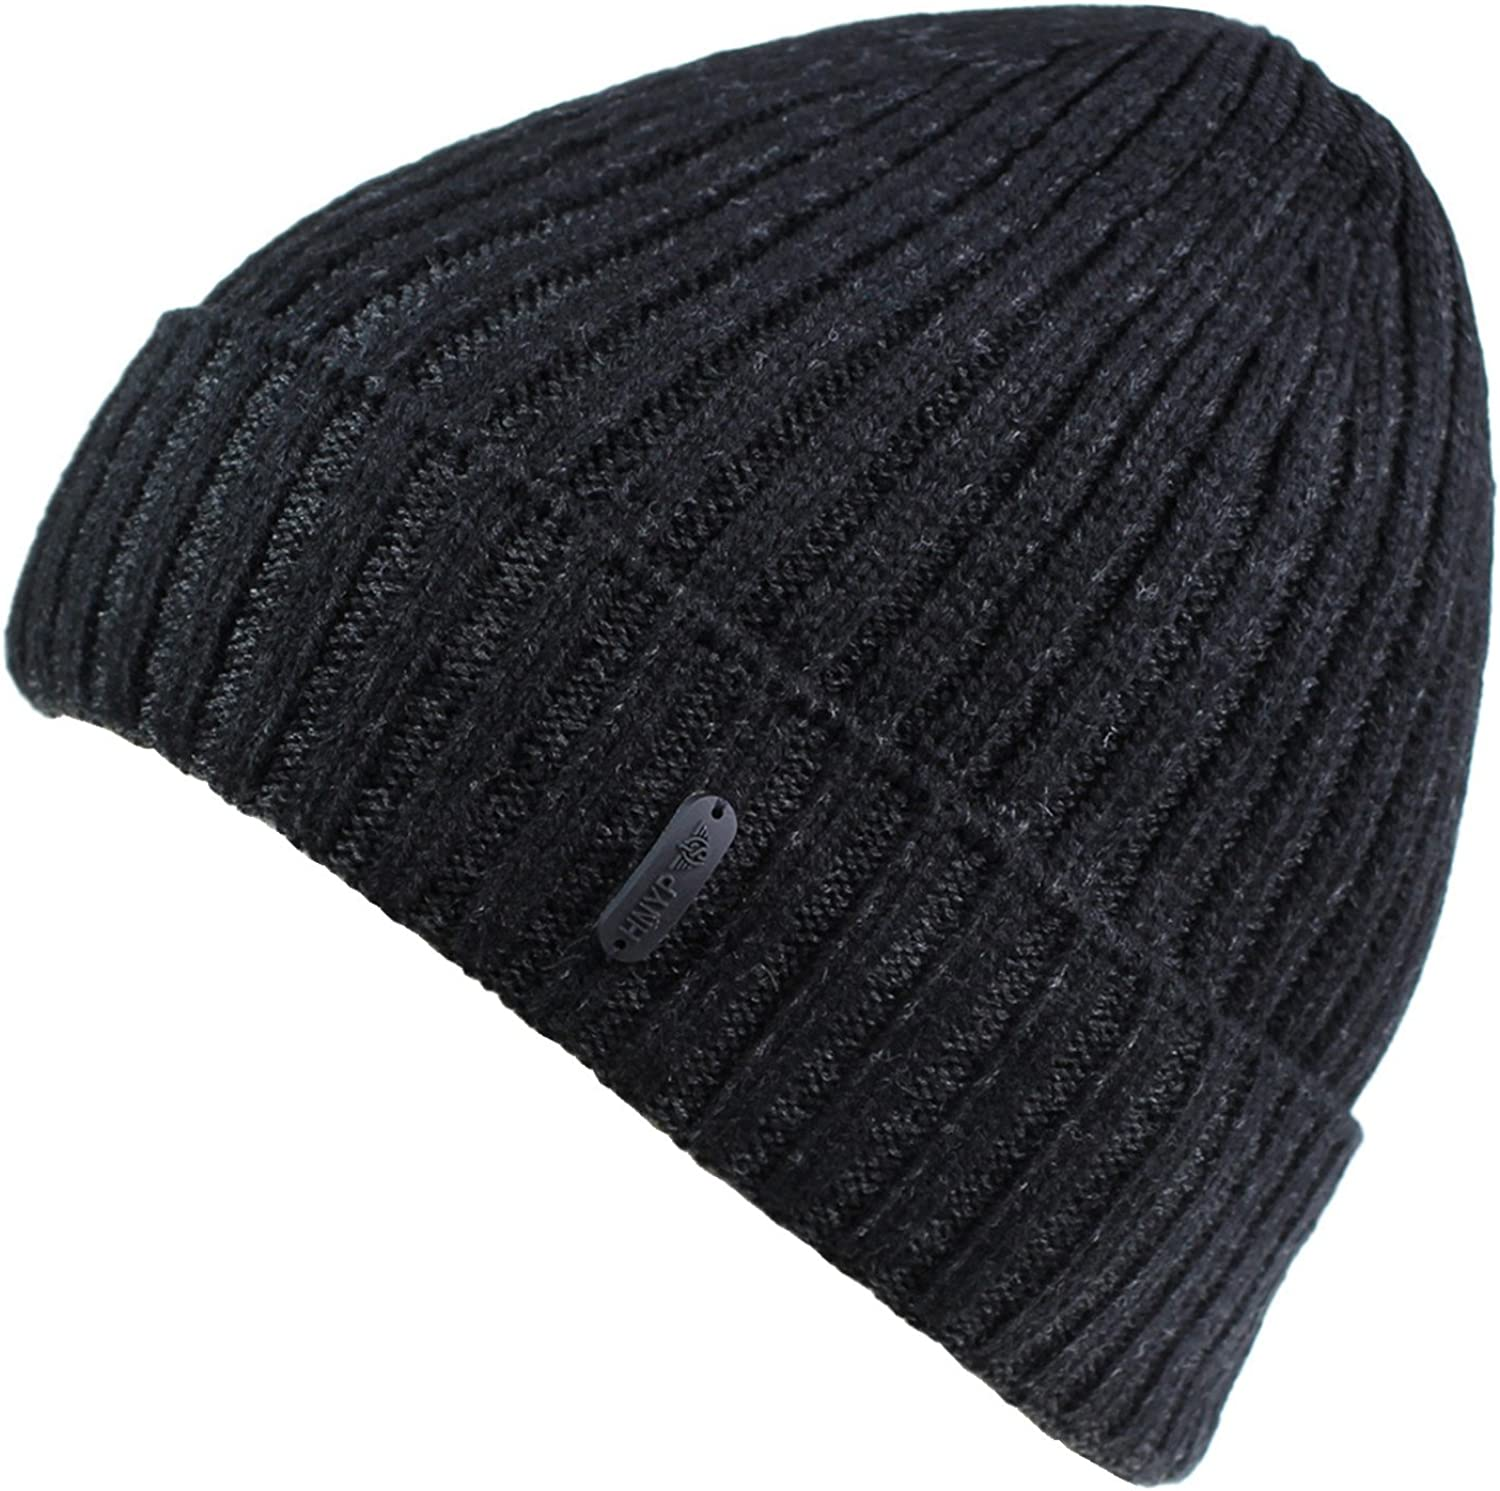 Thick Winter Hats